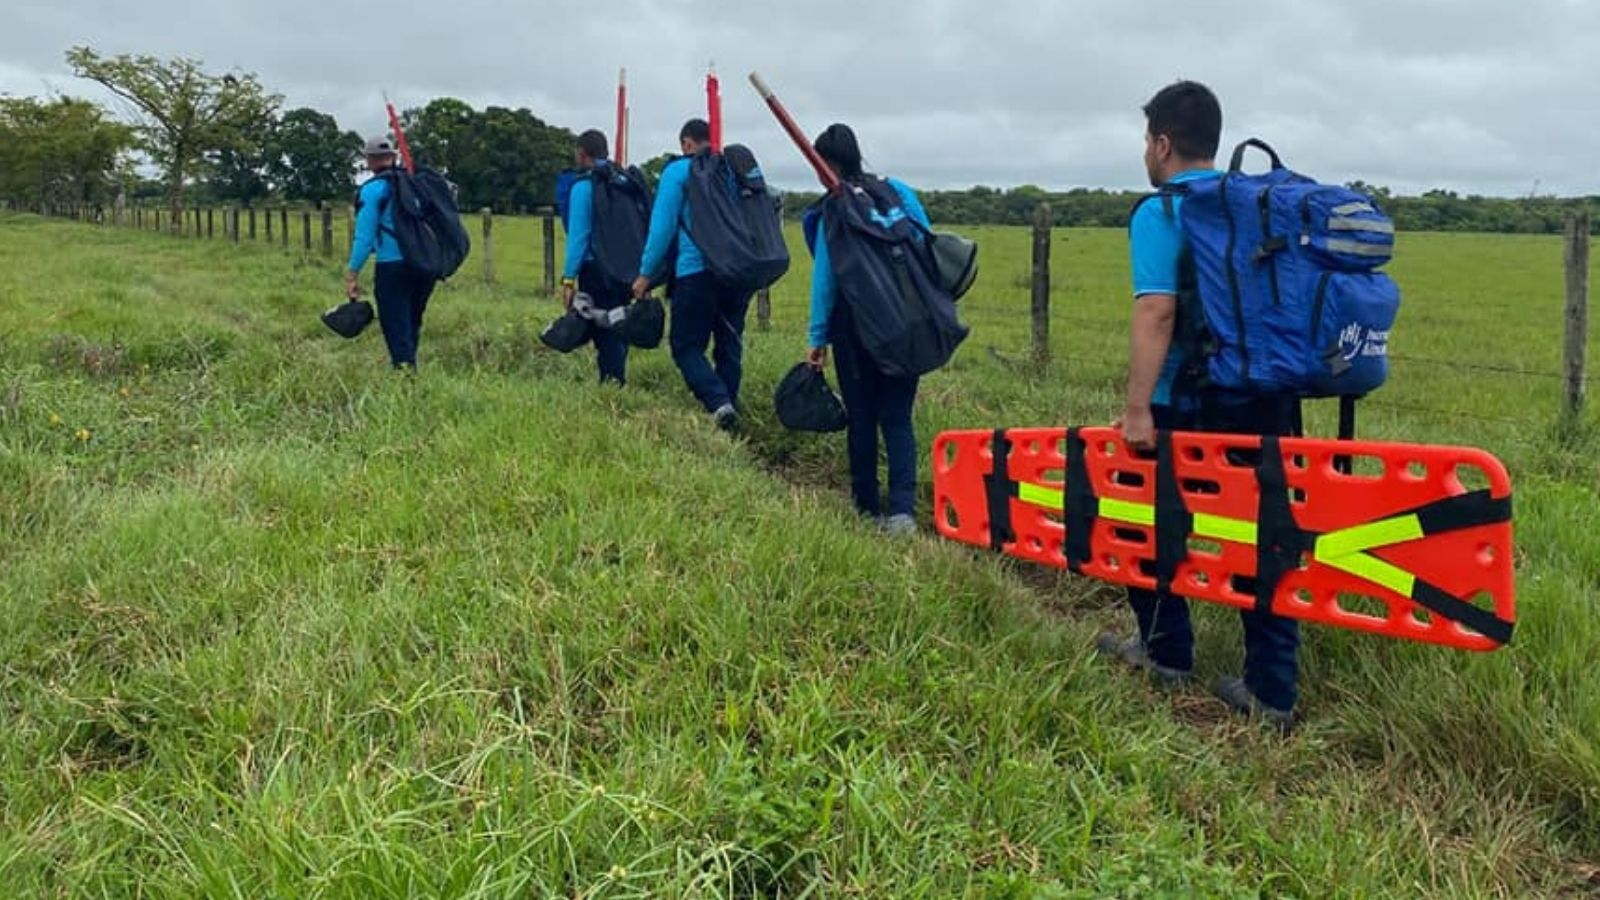 Colombia | Demining team trains in preparation of 2021